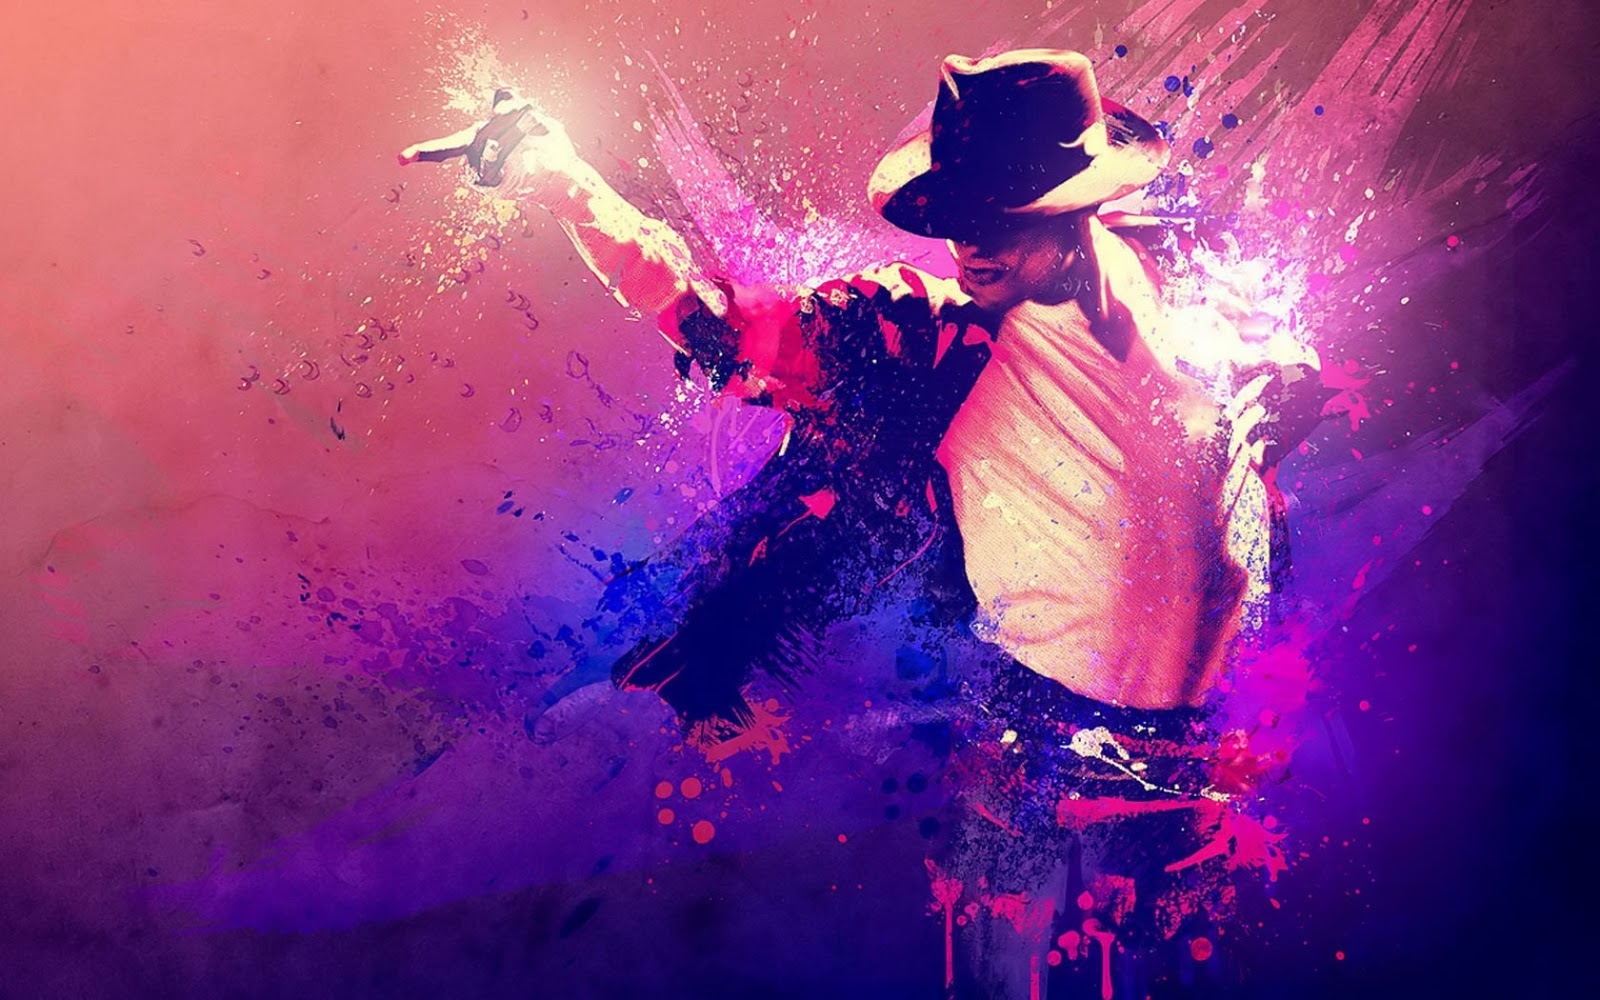 http://2.bp.blogspot.com/-uXp8T5AUgnM/UB0BjjRcdUI/AAAAAAAAL-g/Dzugv106HXg/s1600/The-best-top-desktop-michael-jackson-wallpapers-17.jpg